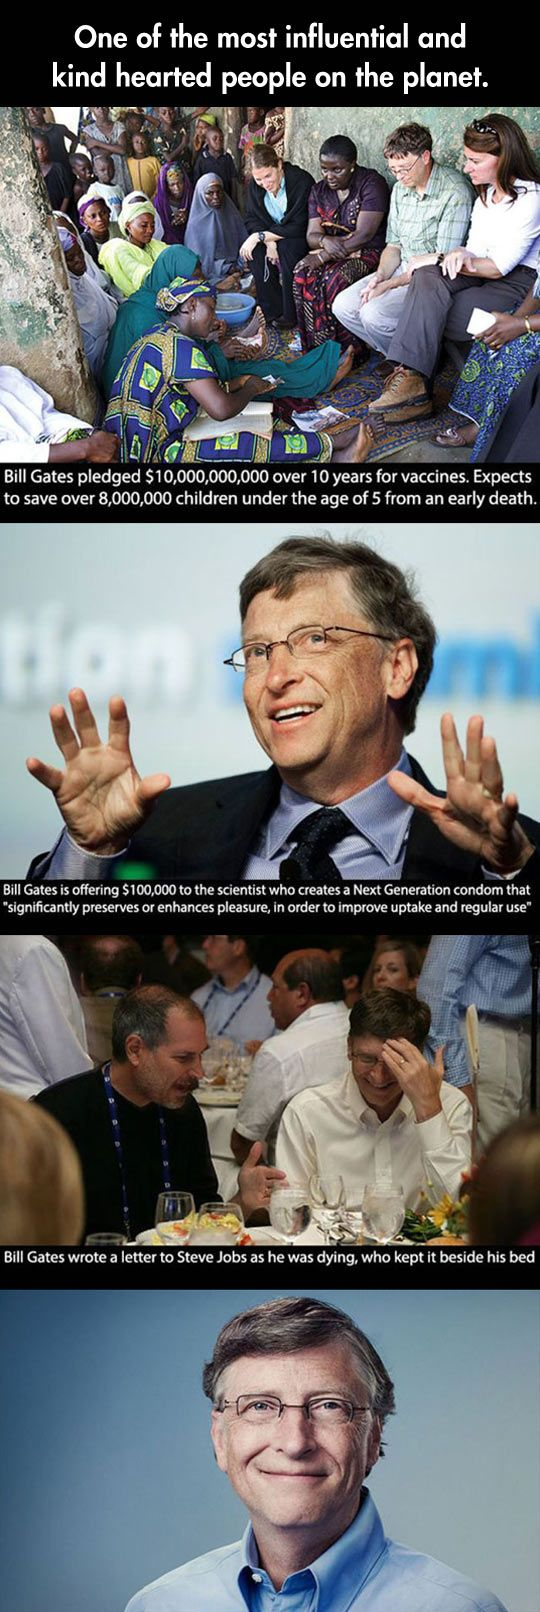 Ladies And Gentlemen, I Present To You, Good Guy Bill Gates *applause